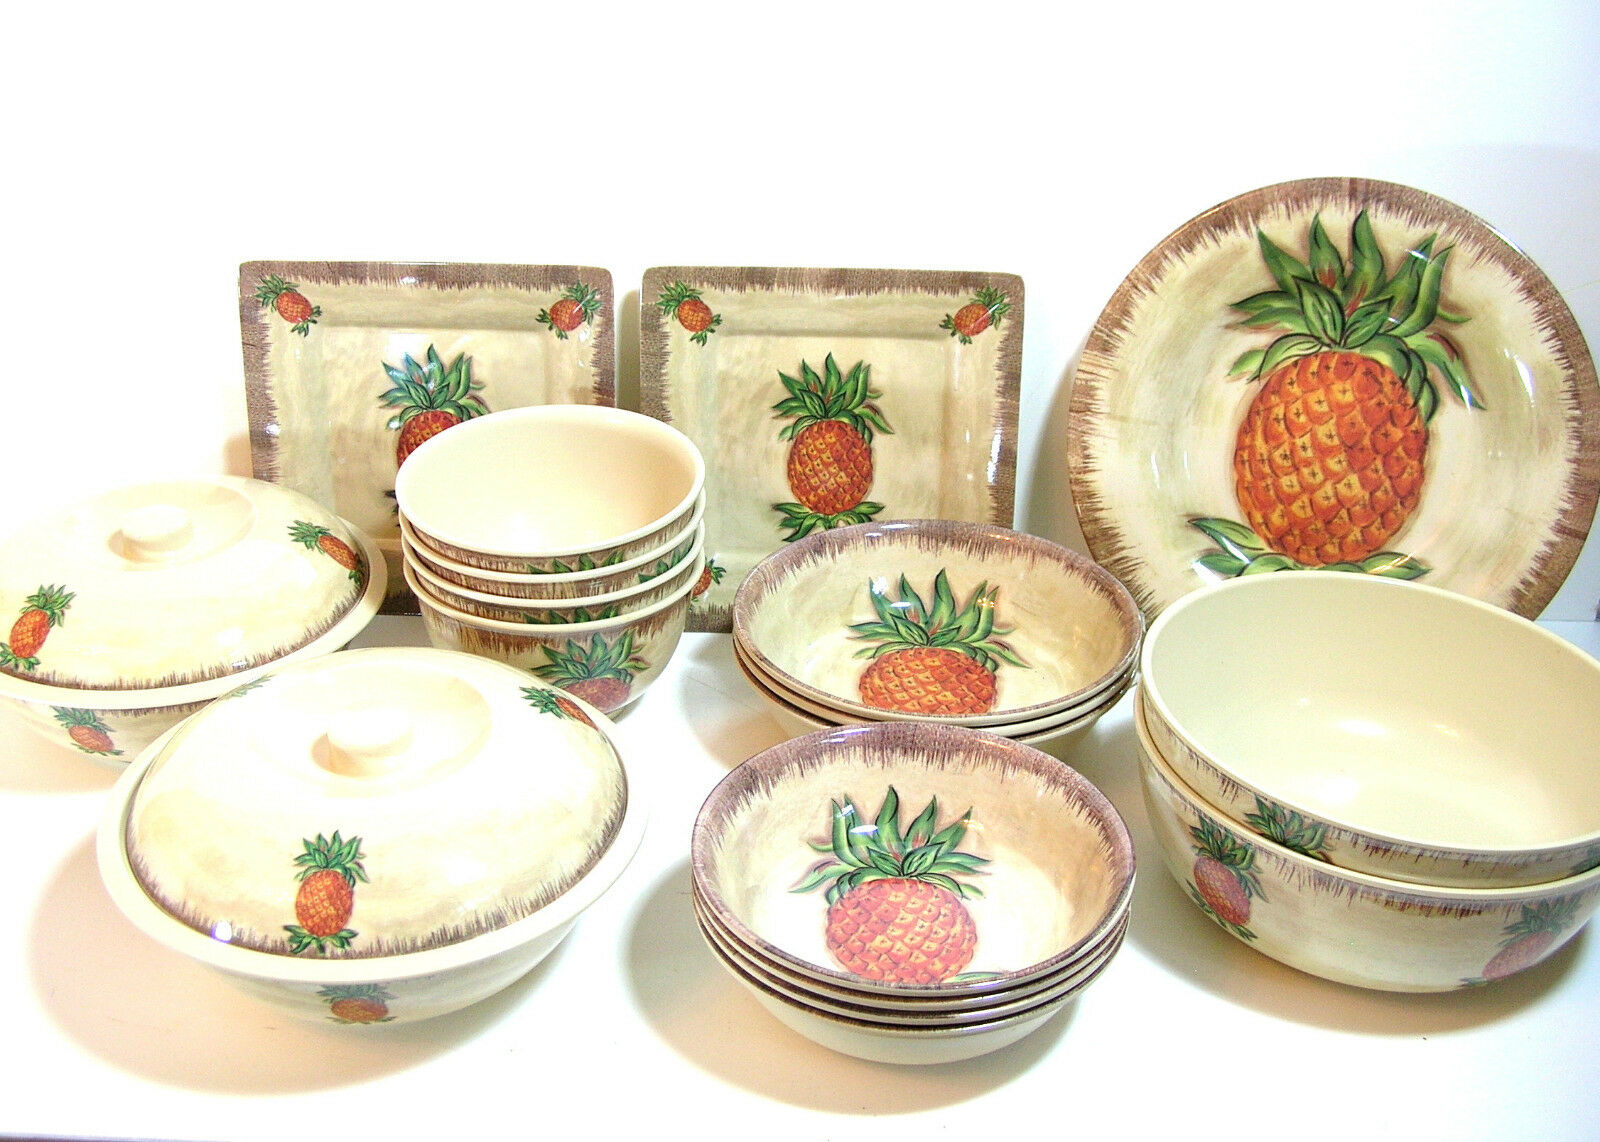 Plastic Dishware With Pineapples, 20 Pieces, Outdoor or Indoor Dining